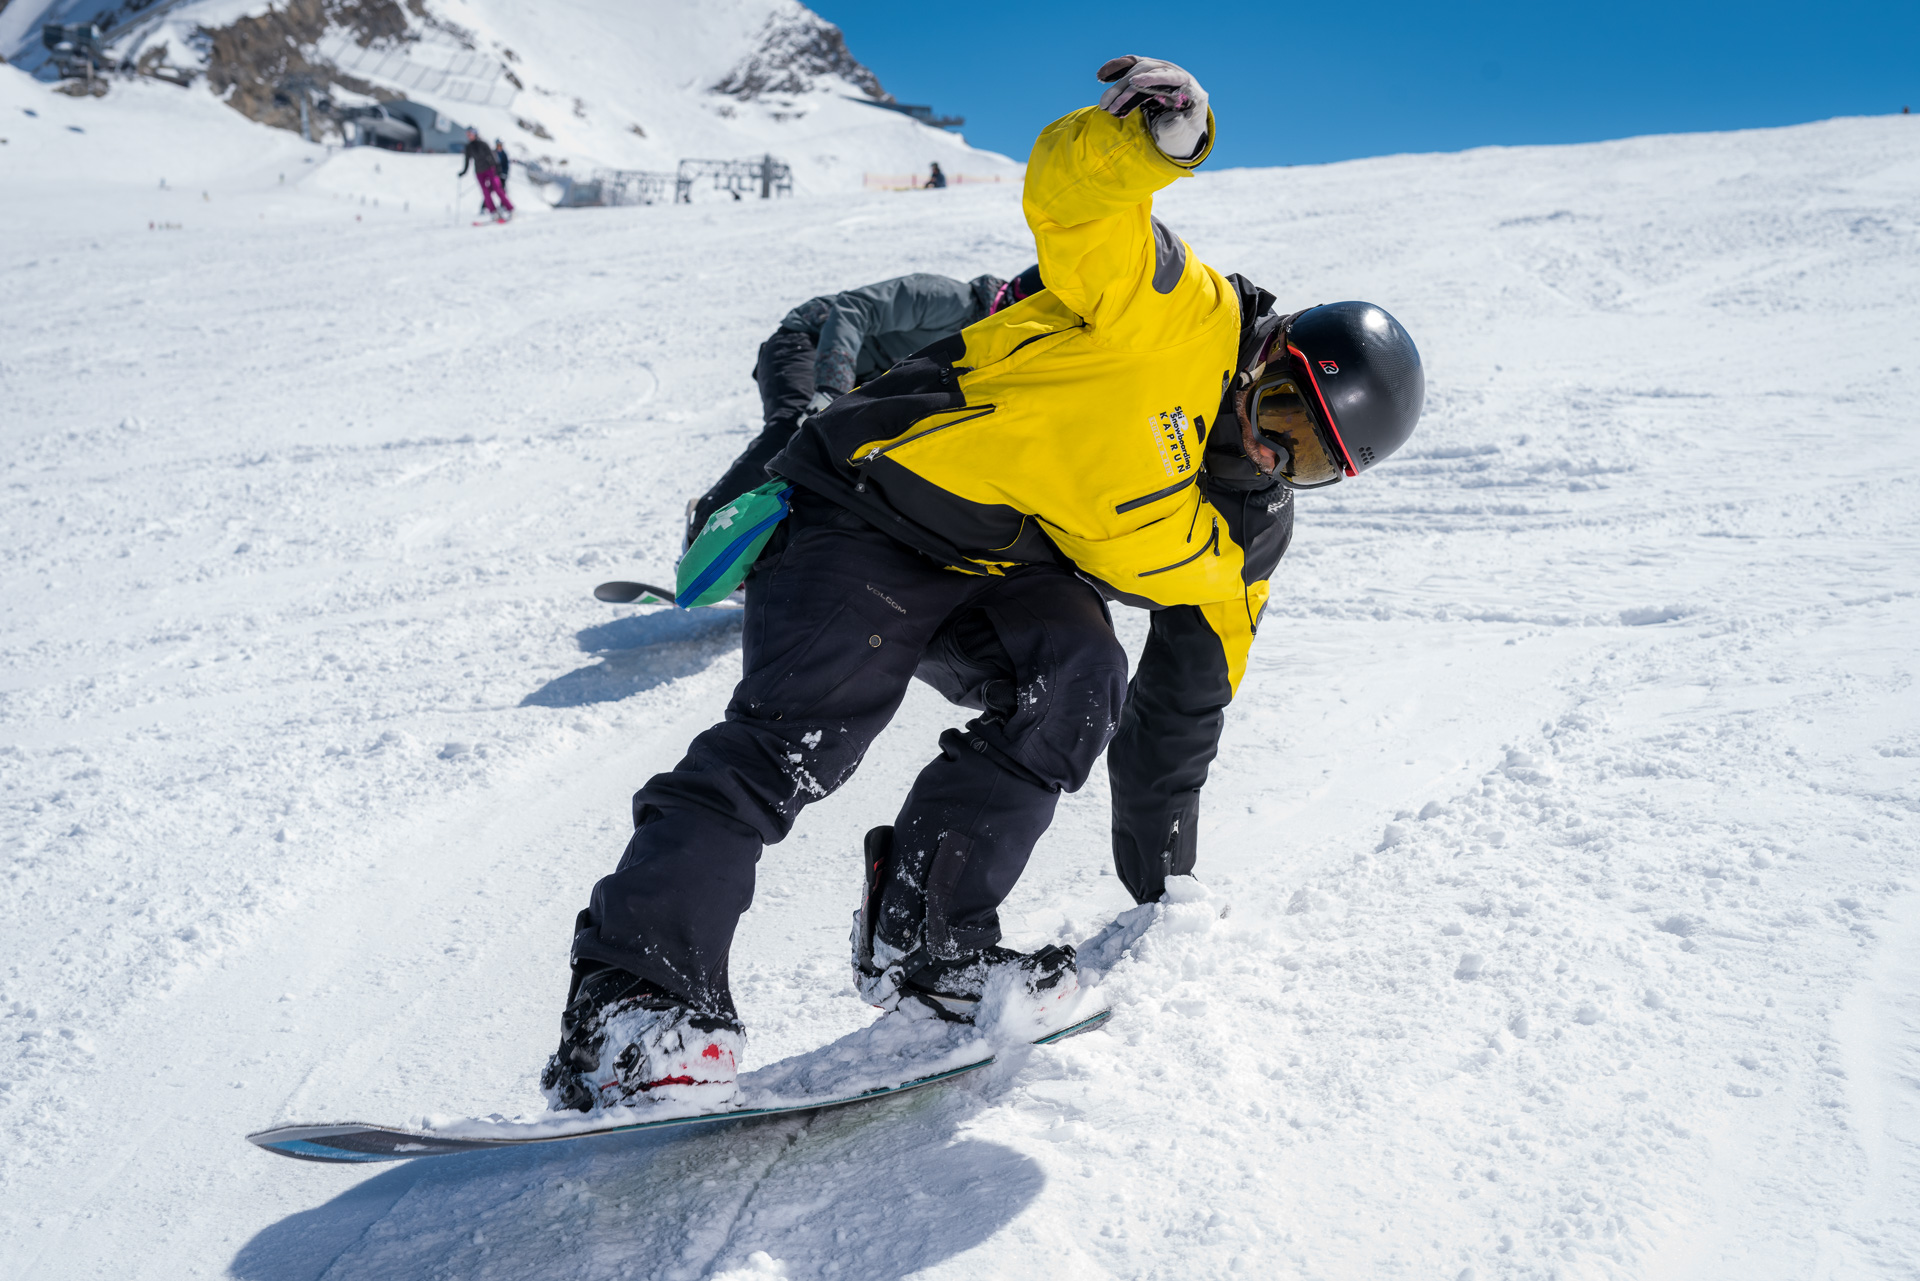 Snowboard 3 Tage/Days - Kurs/Course Kinder/Children